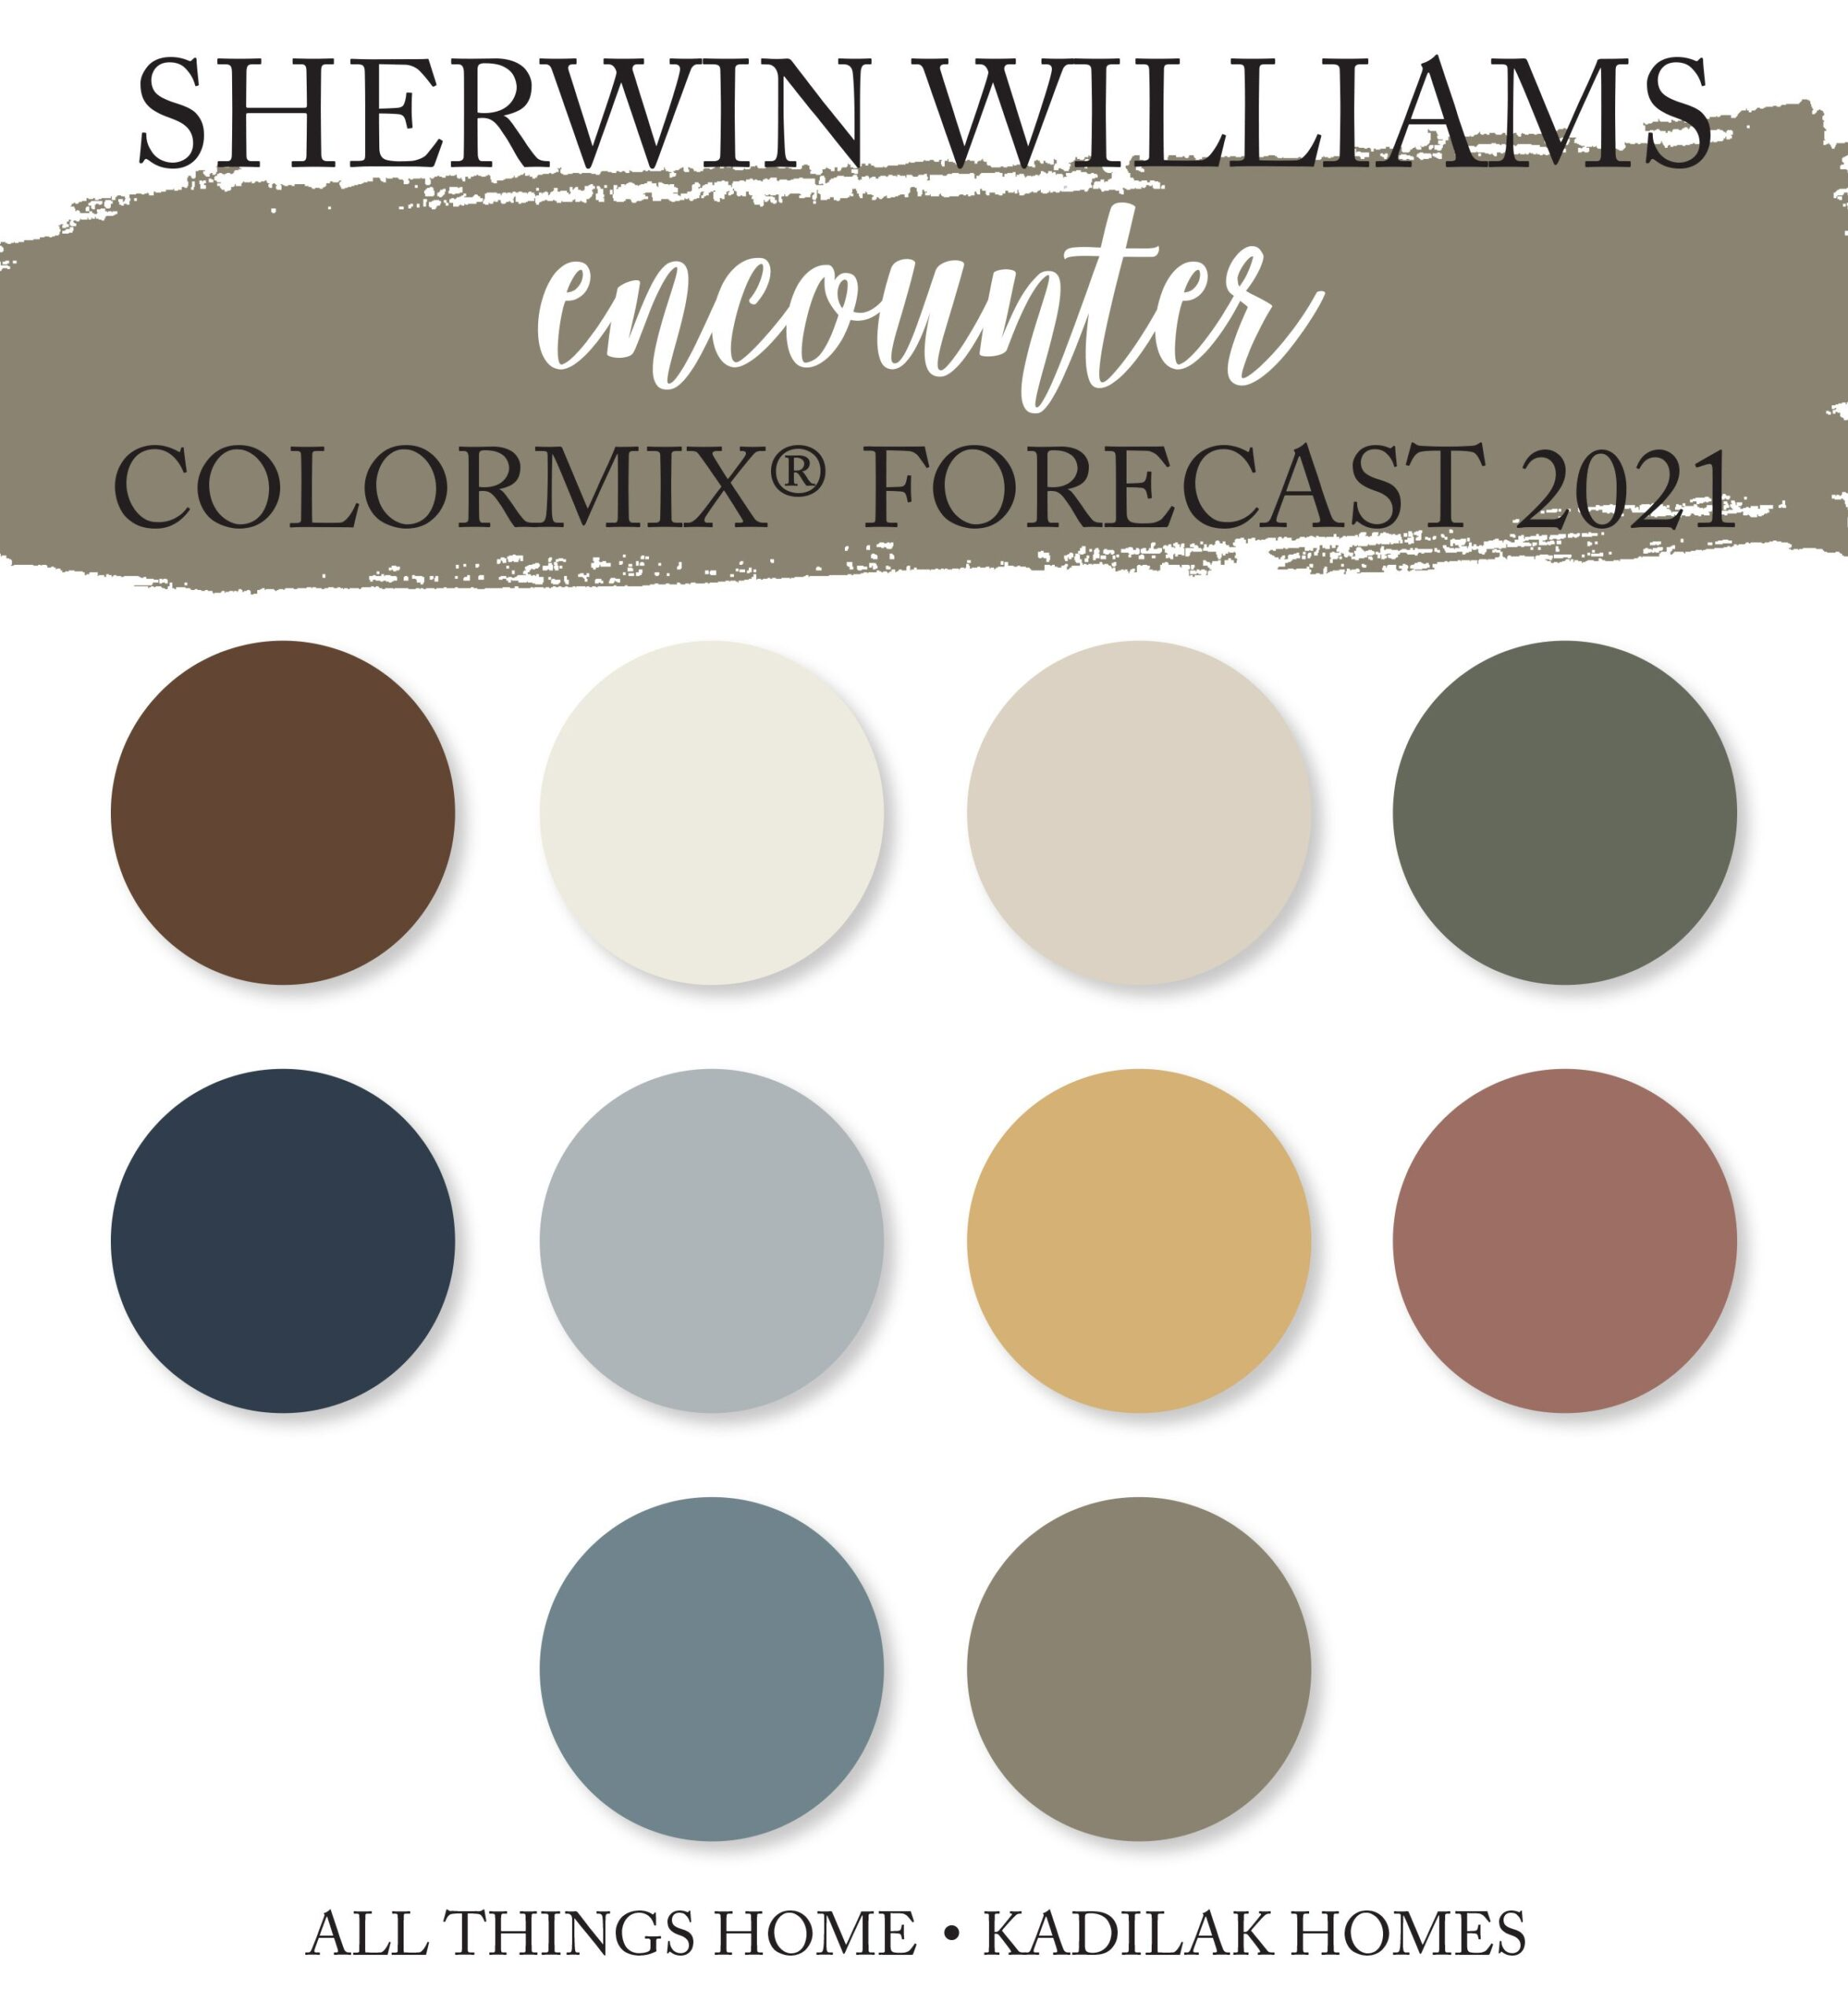 Sherwin Williams Colormix® Forecast 2021!